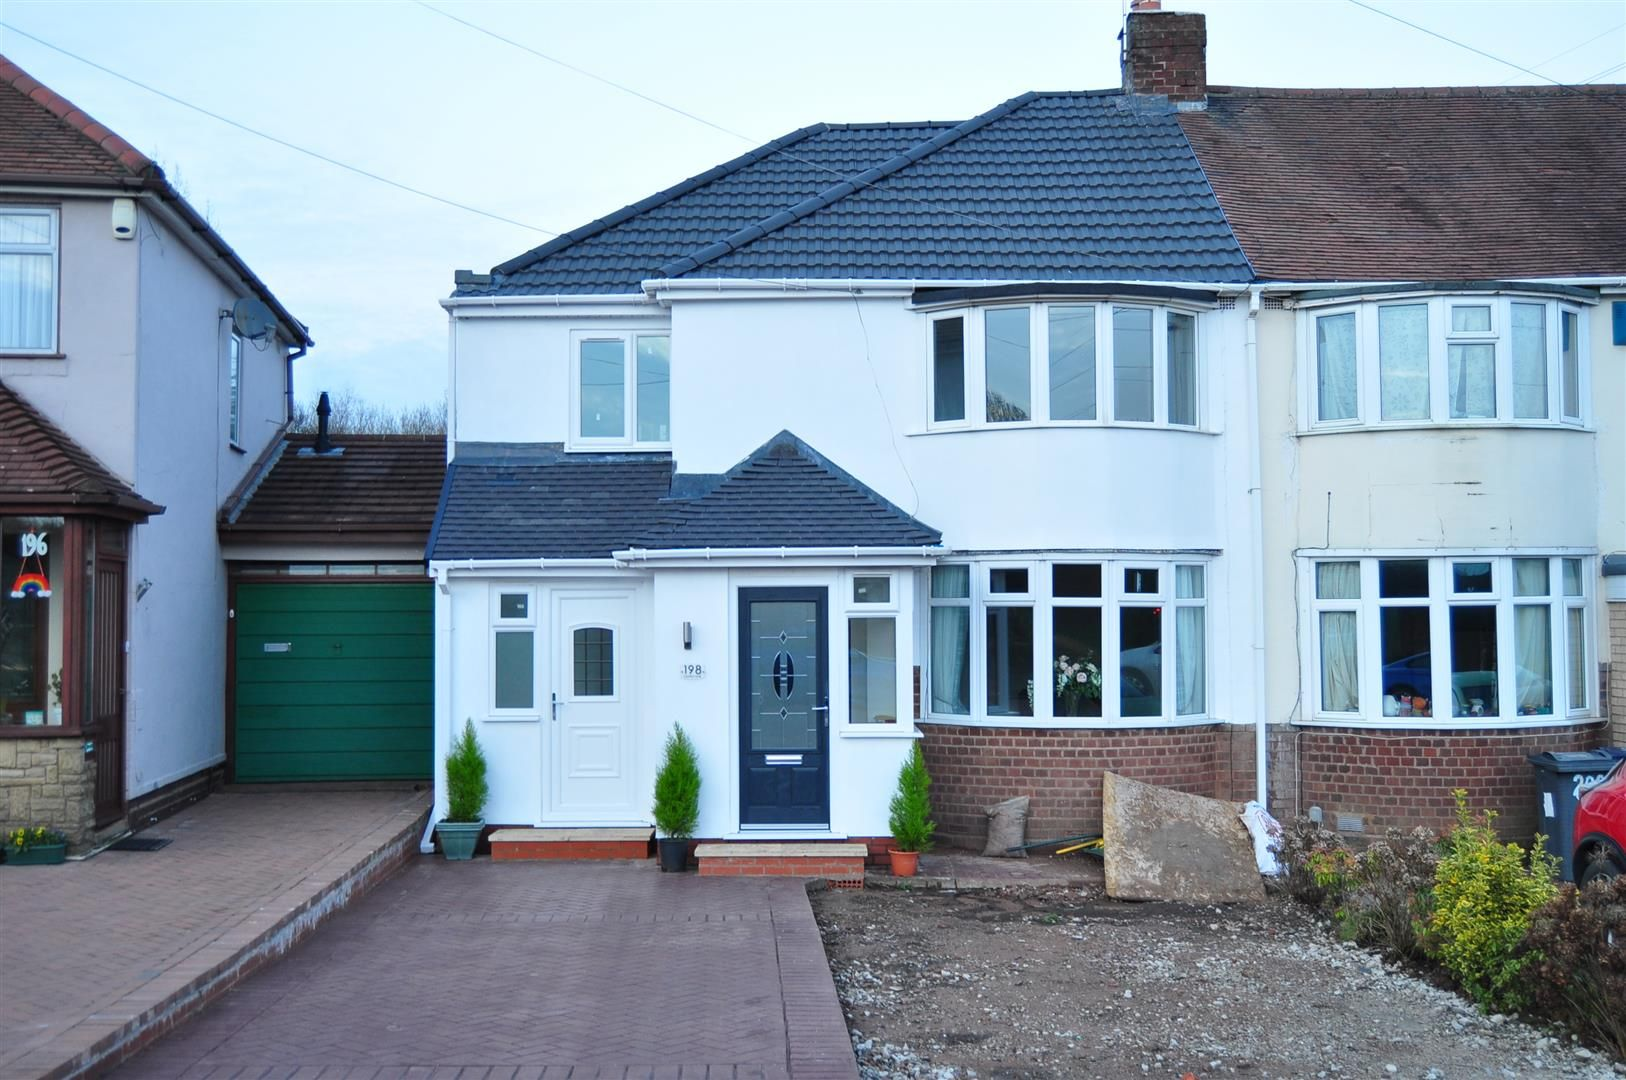 3 bed house for sale 27